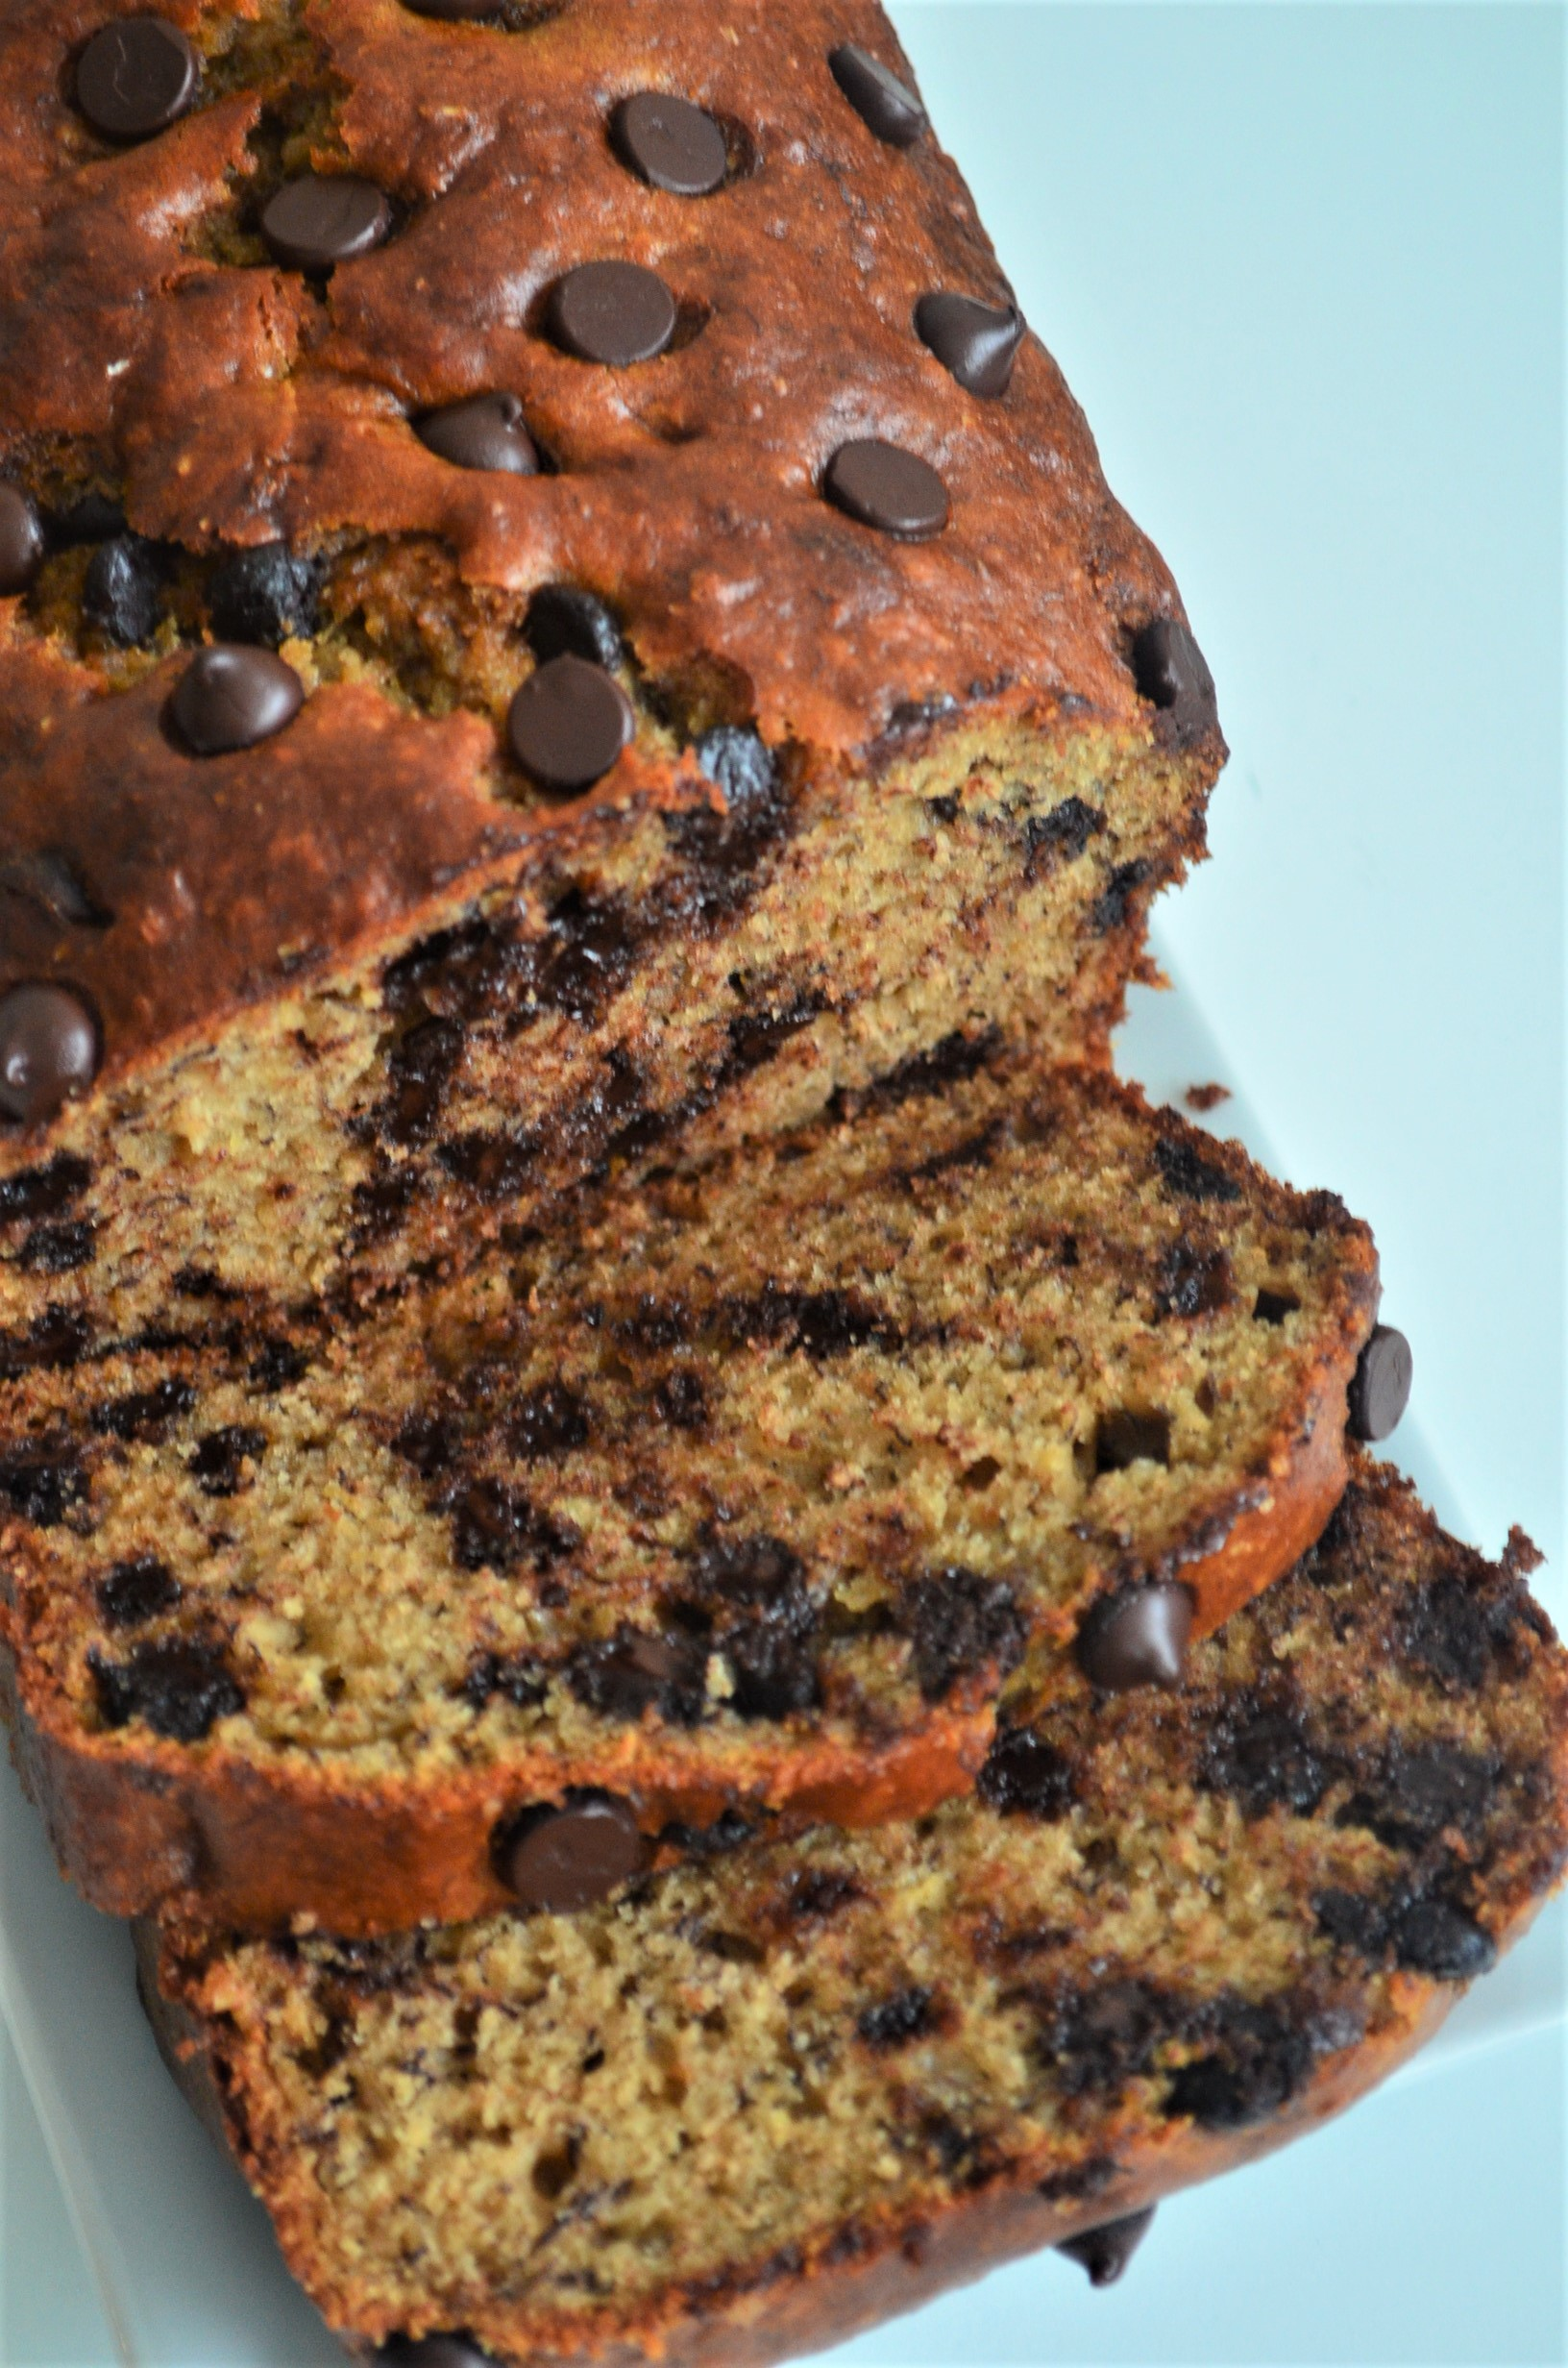 How To Make Chocolate Chip Banana Bread By SweetNSpicyLiving.com